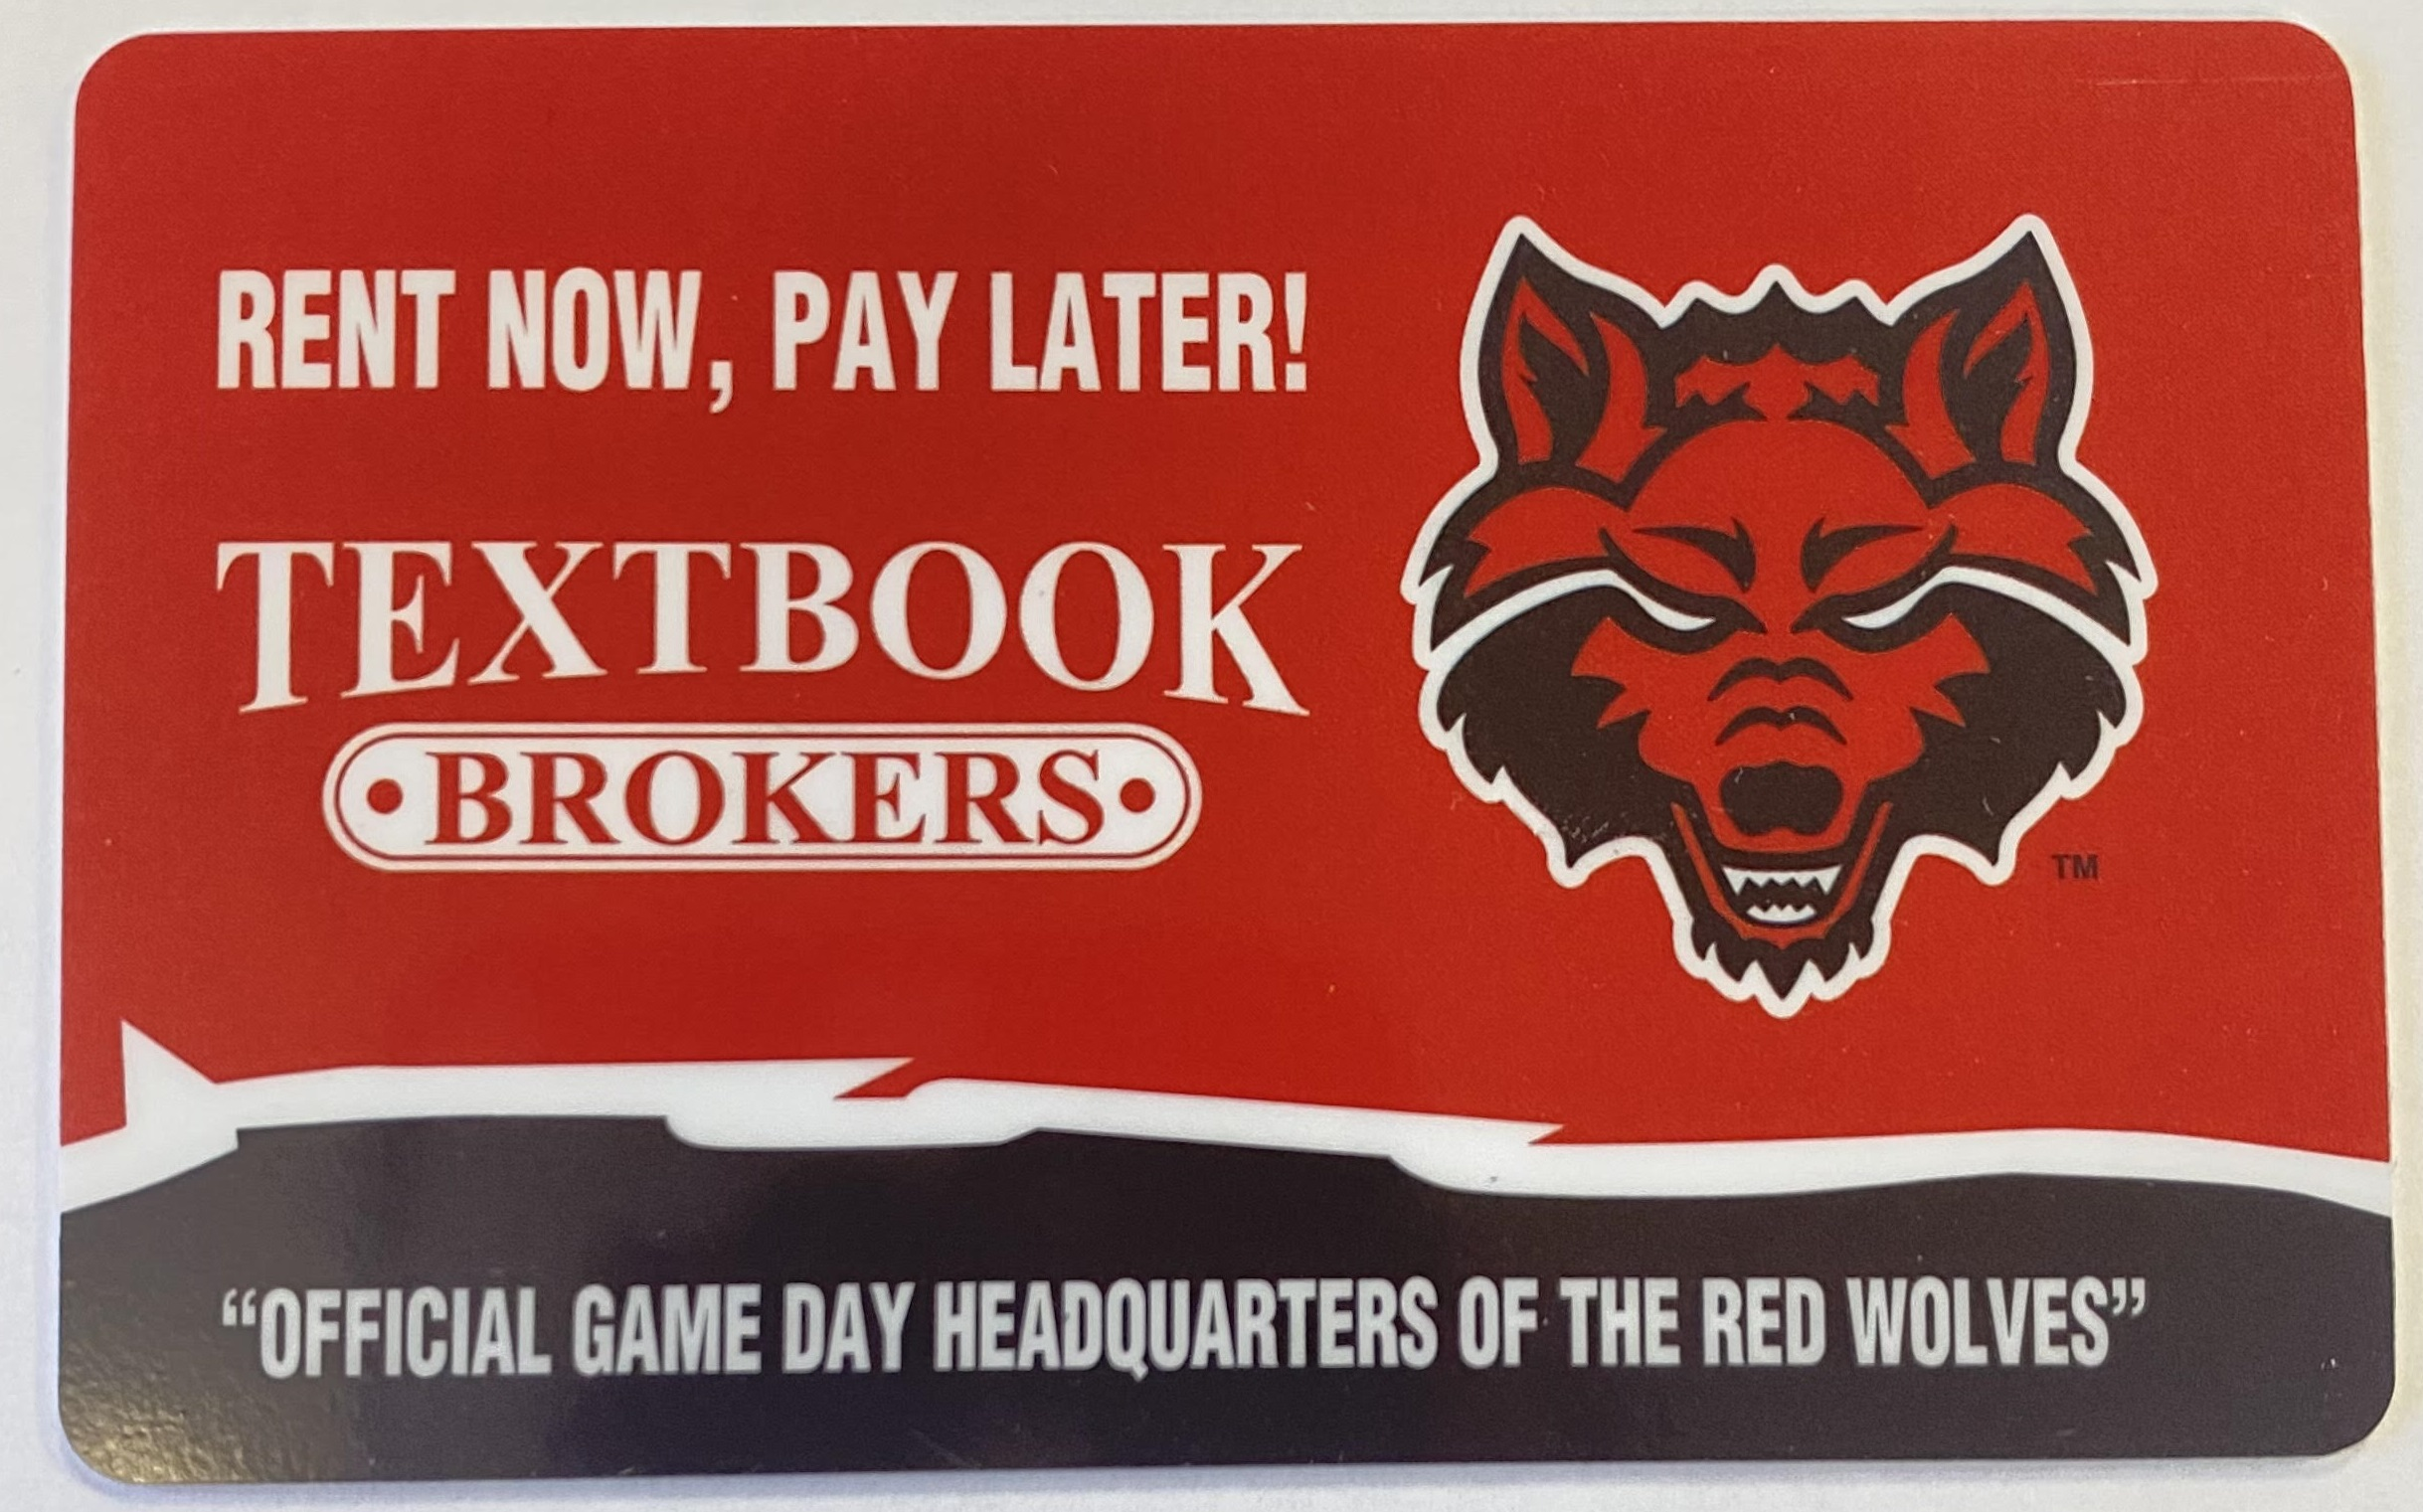 $50 Textbook Brokers Gift Card